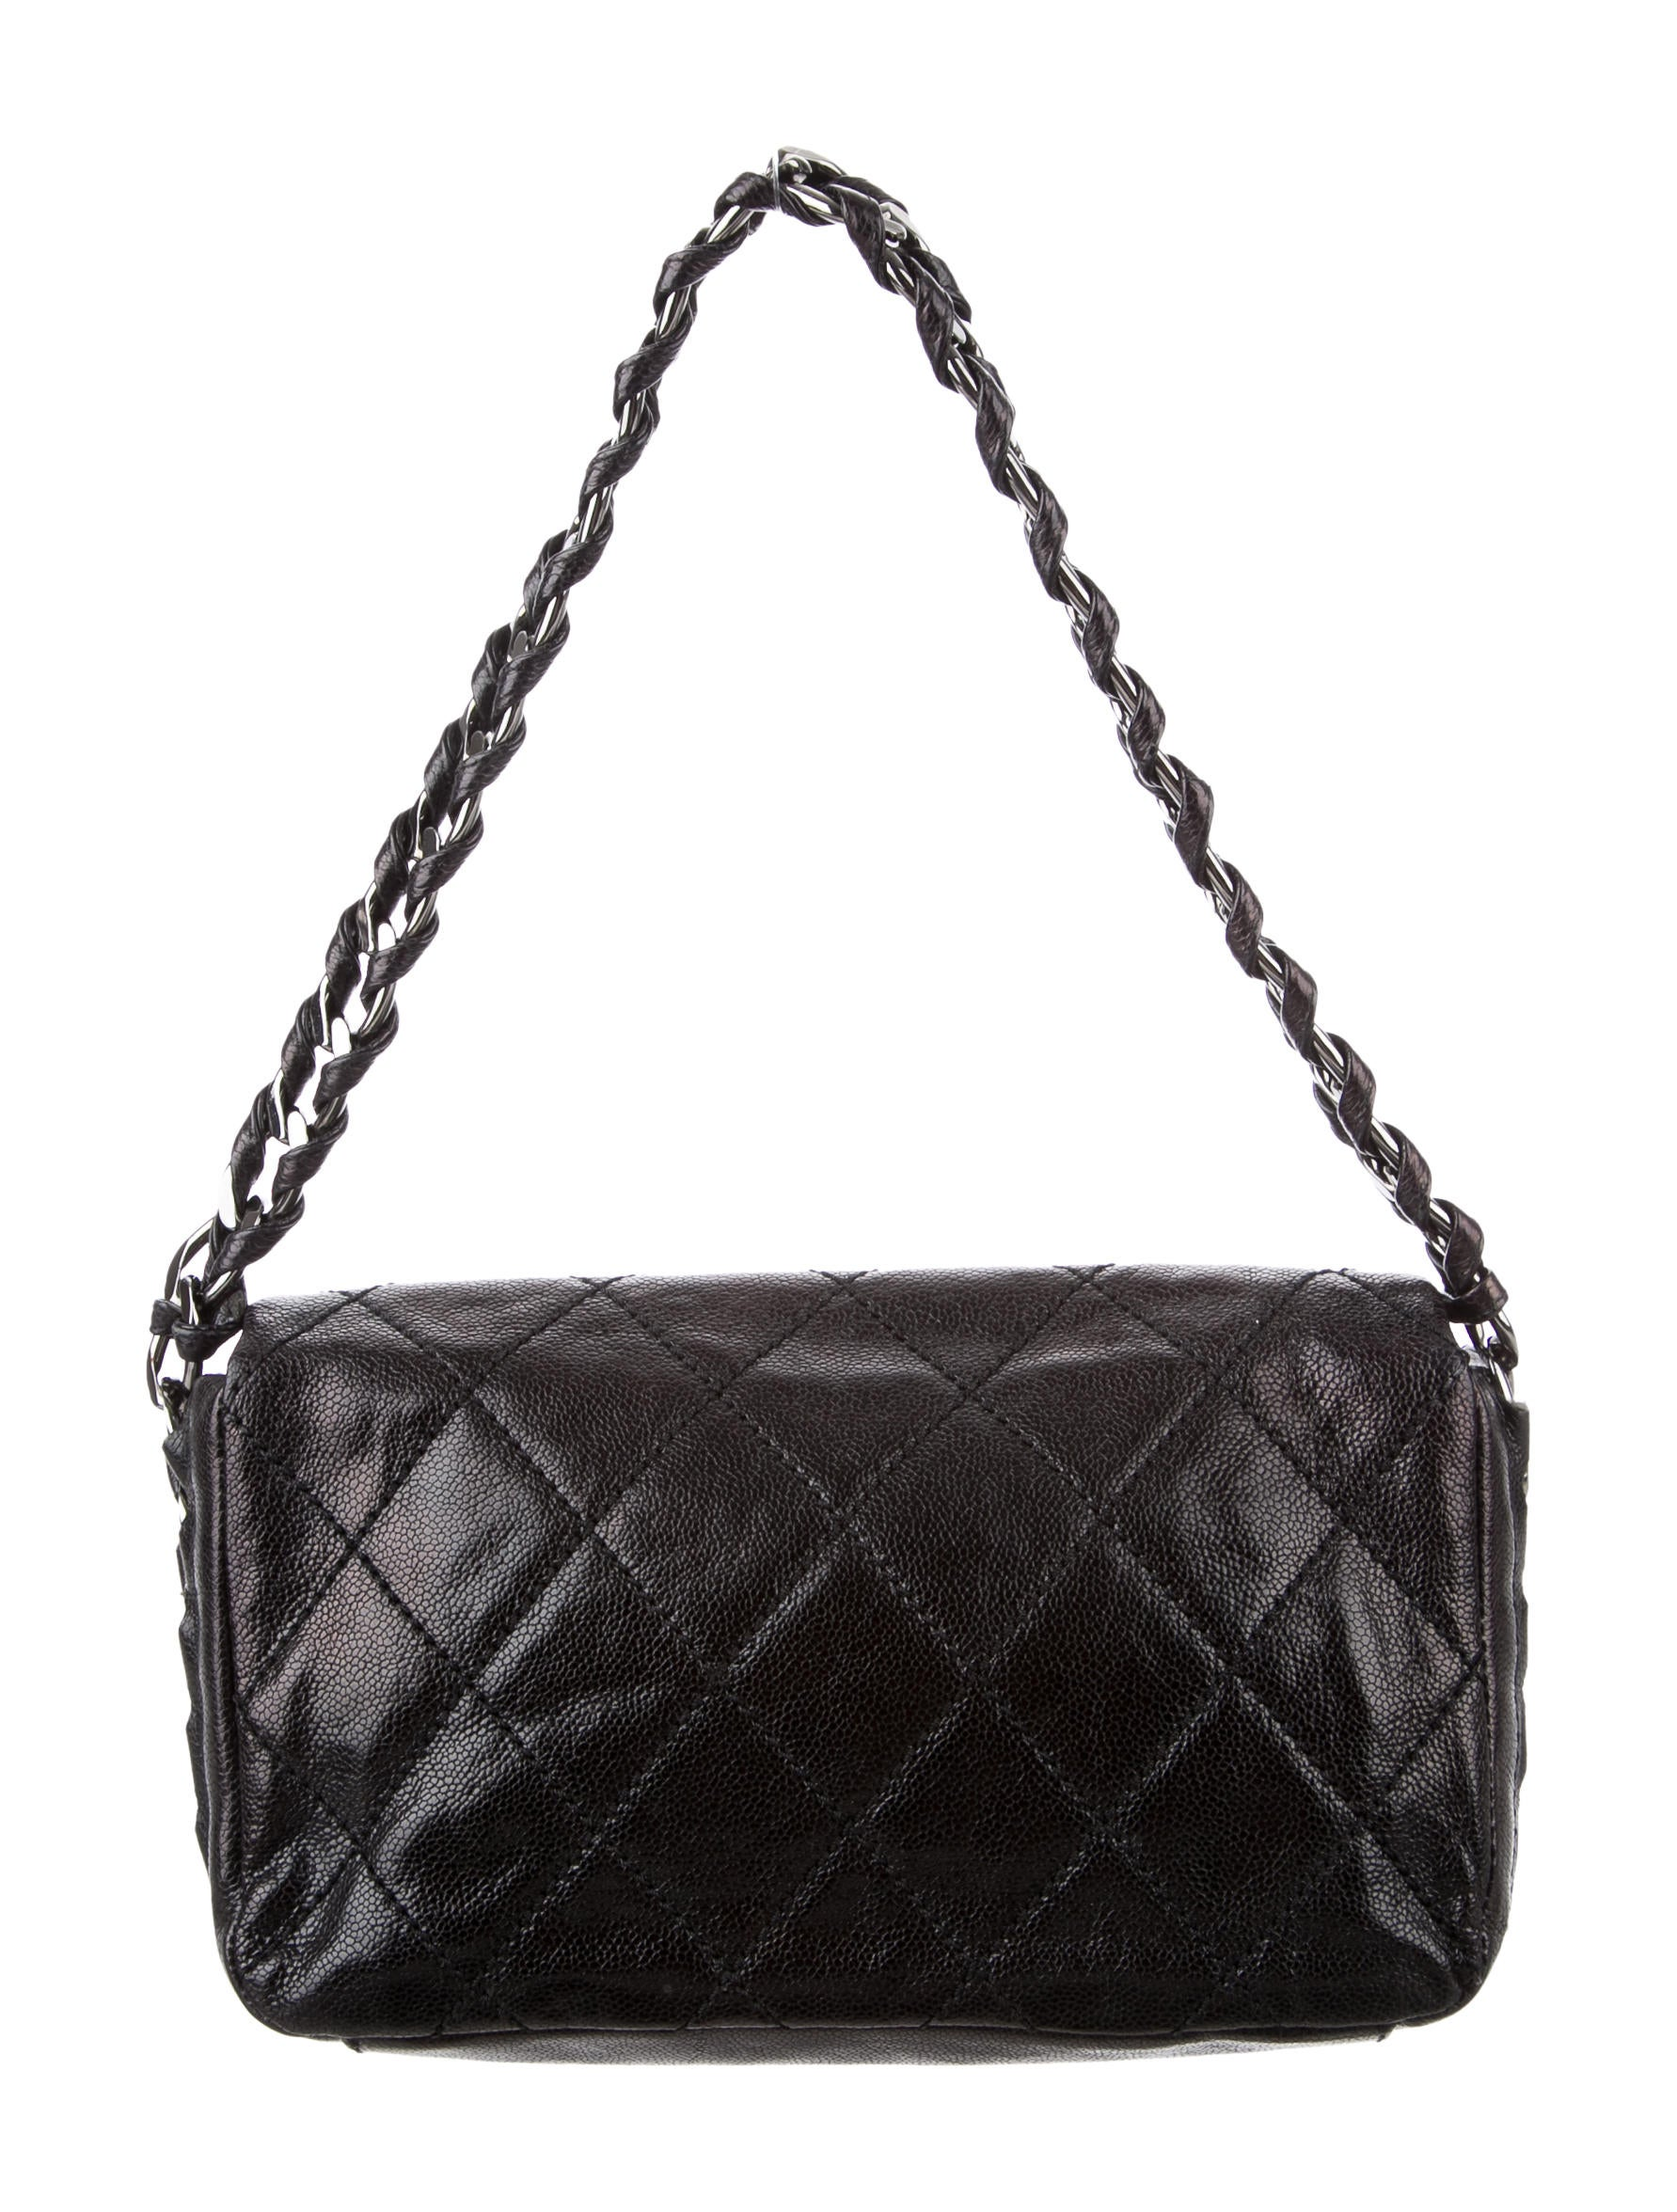 b09dce9e12d45e Chanel Modern Chain Flap Bag | Stanford Center for Opportunity ...